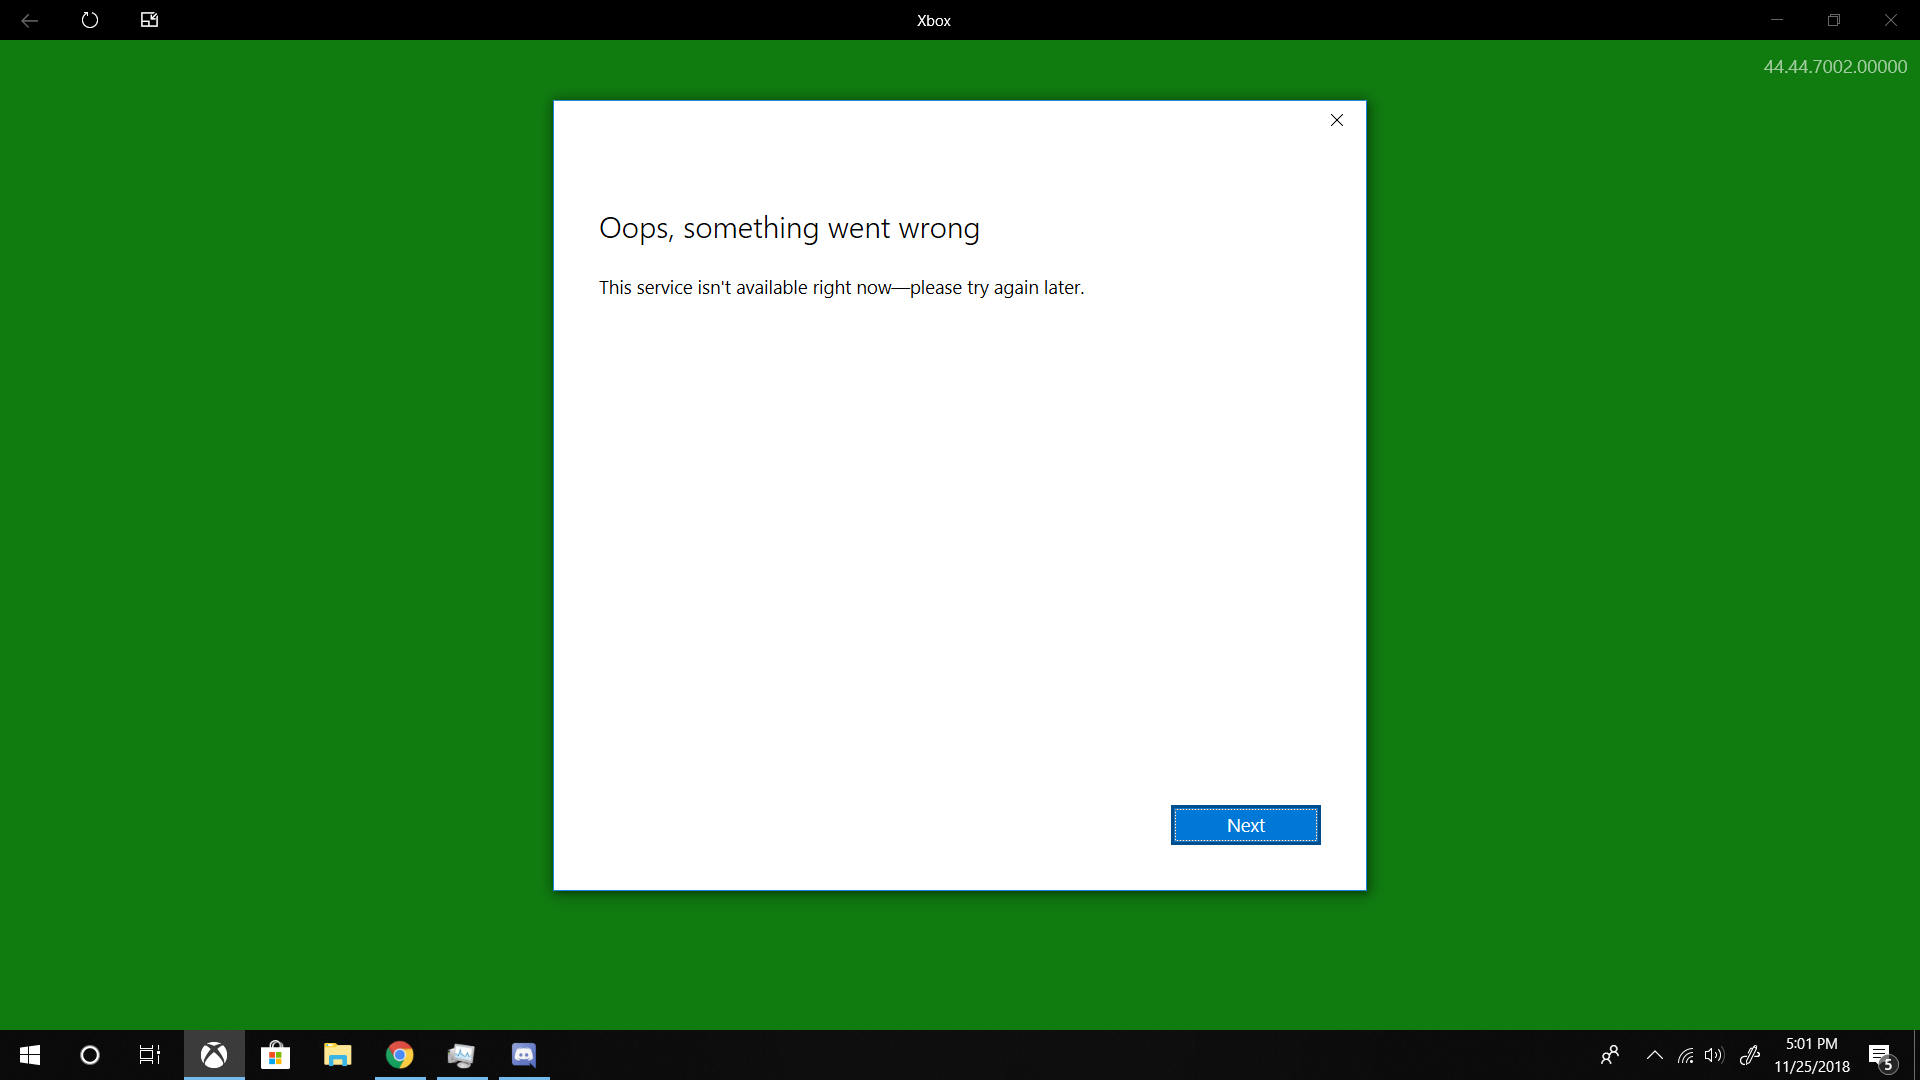 Can't Sign into Xbox App or Play Microsoft Store Games After